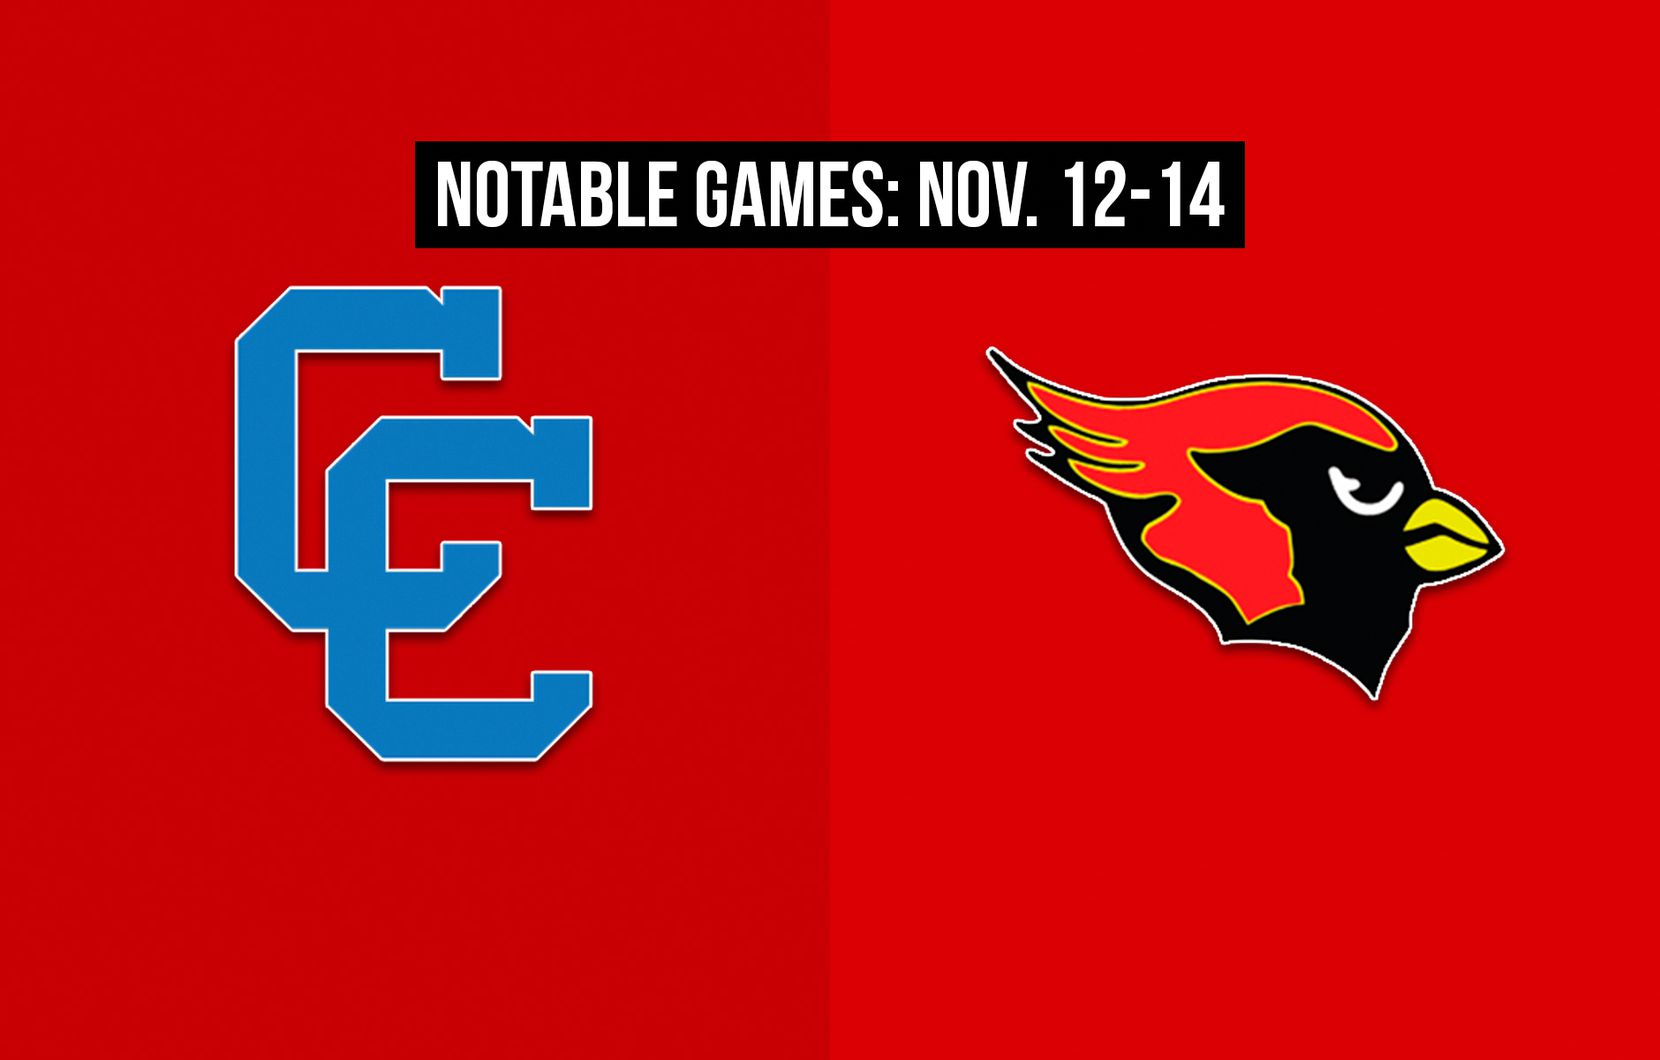 Notable games for the week of Nov. 12-14 of the 2020 season: Carter vs. Melissa.